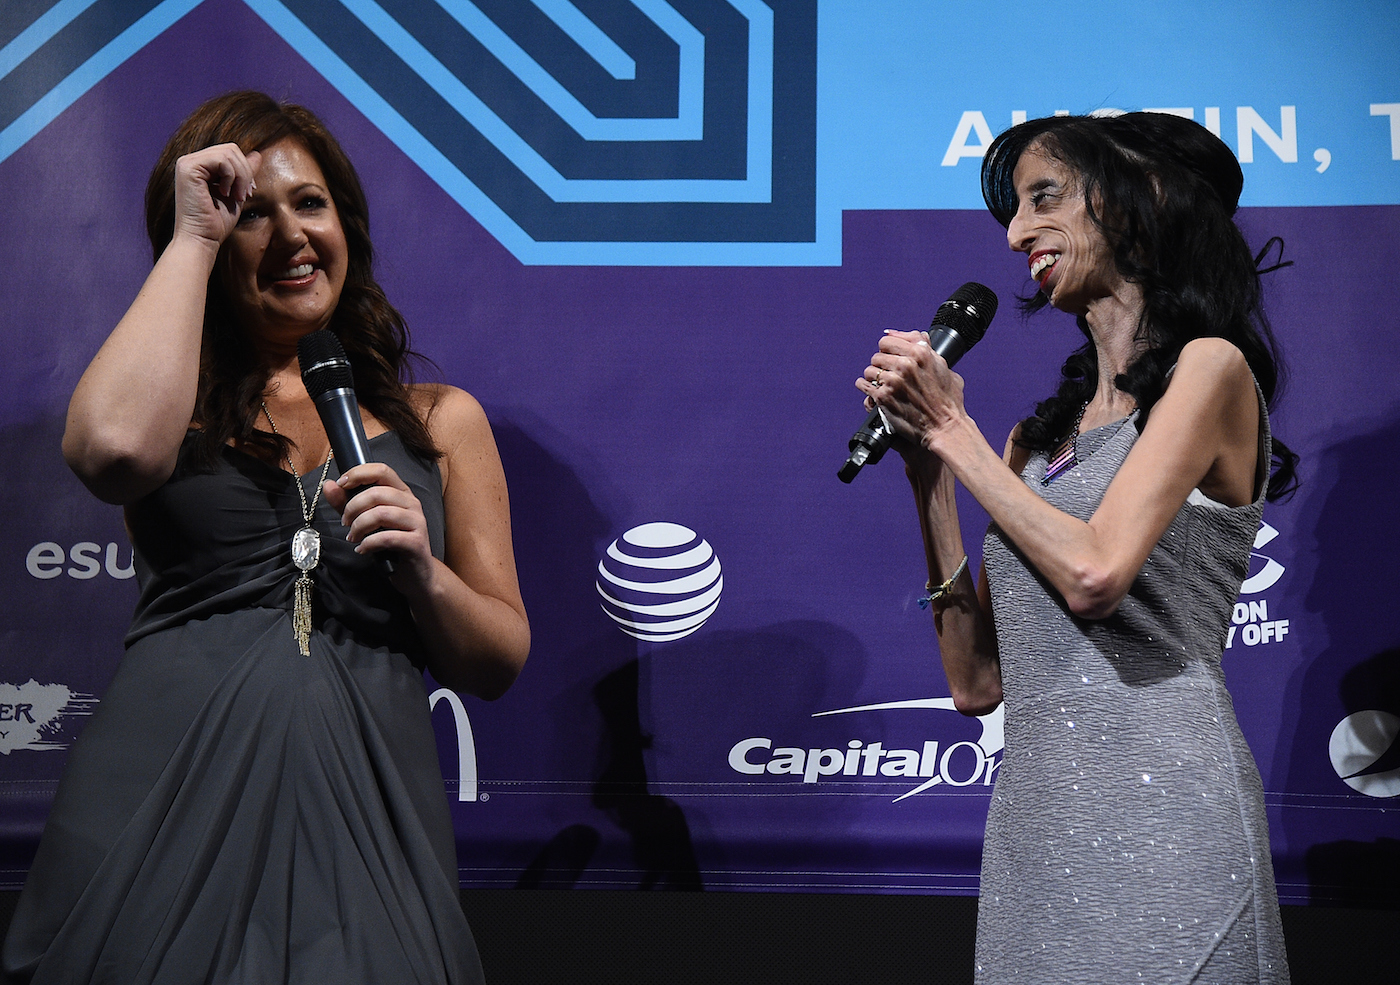 "AUSTIN, TX - MARCH 14: Director Sara Hirsh Bordo (L) and activist Lizzie Velasquez speaks at the premiere of ""A Brave Heart: The Lizzie Velasquez Story"" at Paramount Theatre on March 14, 2015 in Austin, Texas. (Photo by Michael Buckner/Getty Images for SXSW)"